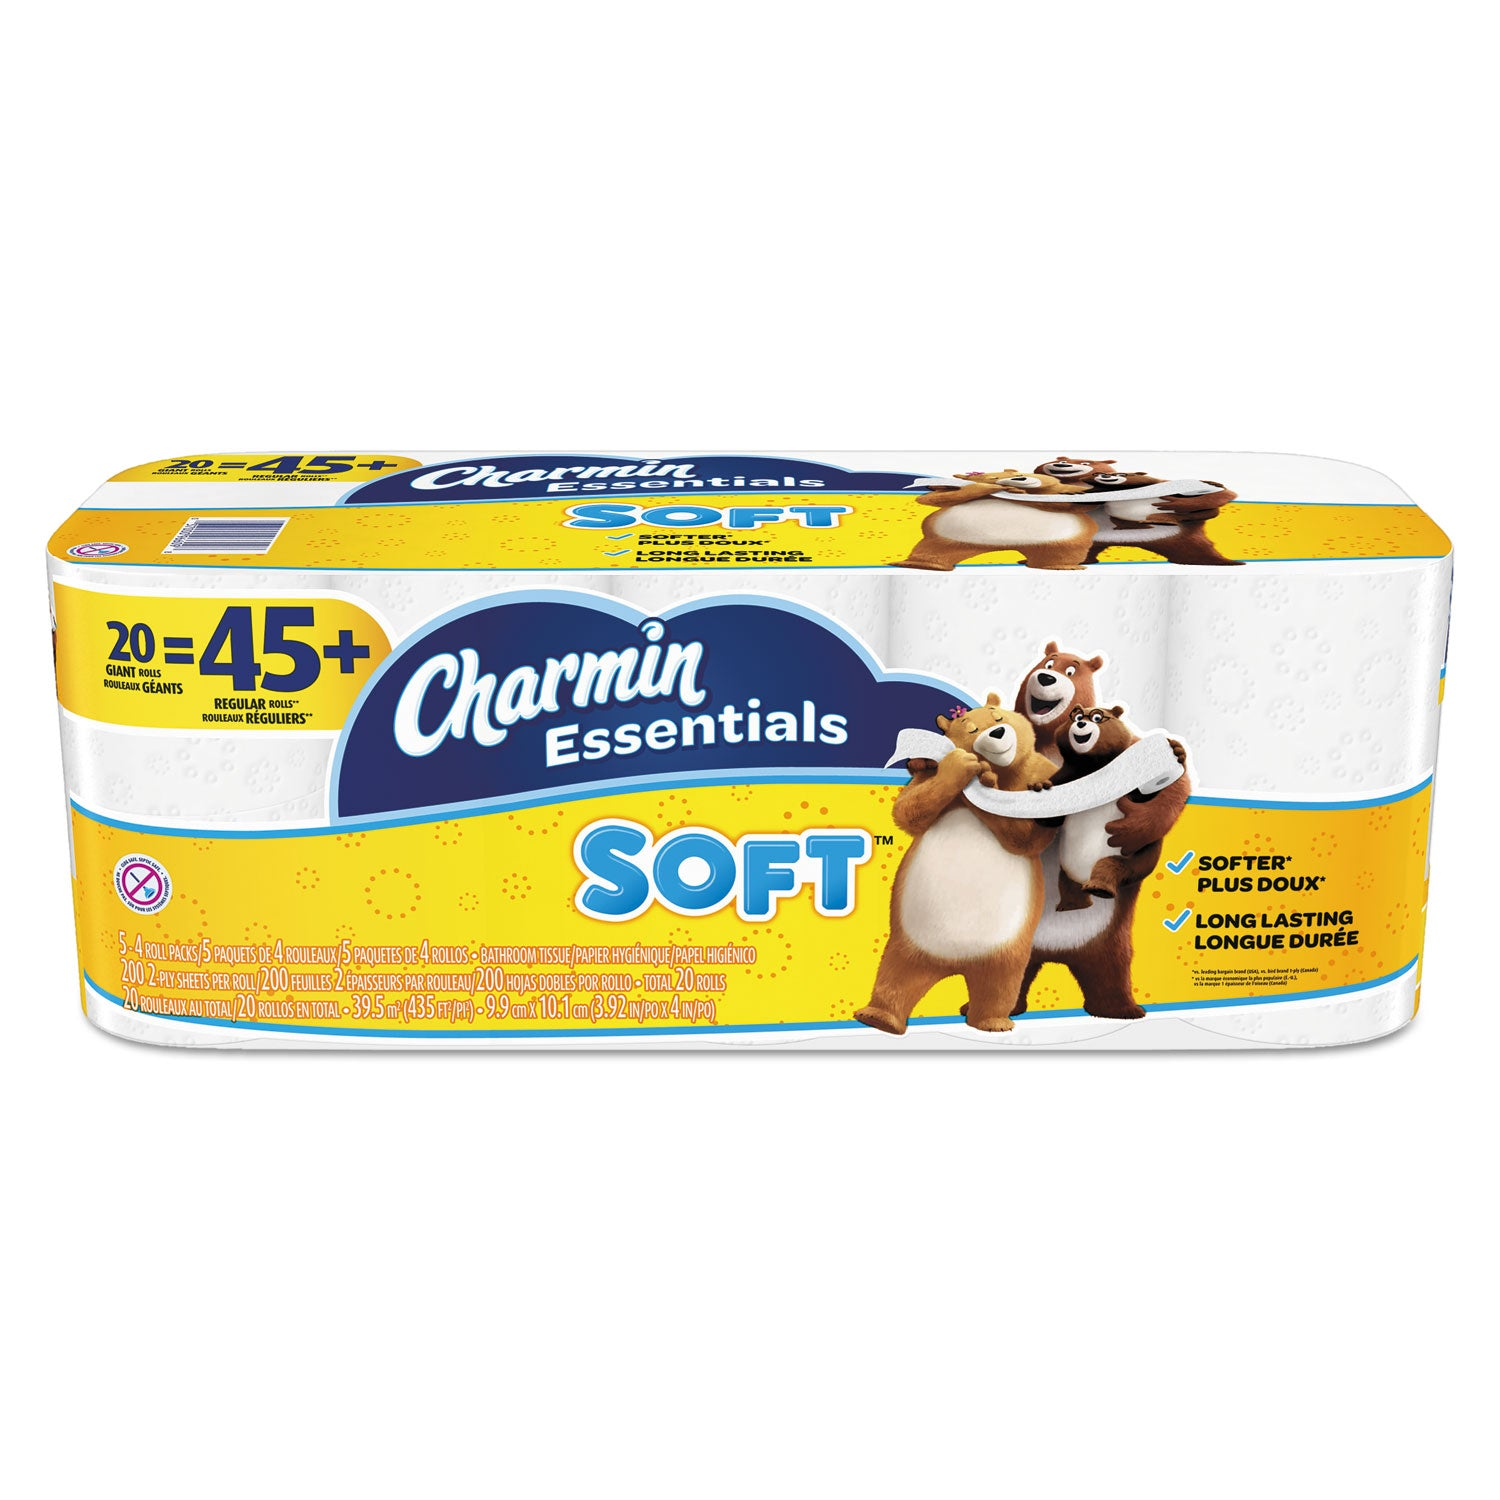 Charmin Essentials Soft Bathroom Tissue, Septic Safe, 2-Ply, White, 4 X 3.92, 200/Roll, 20 Roll/Pack - PGC96609